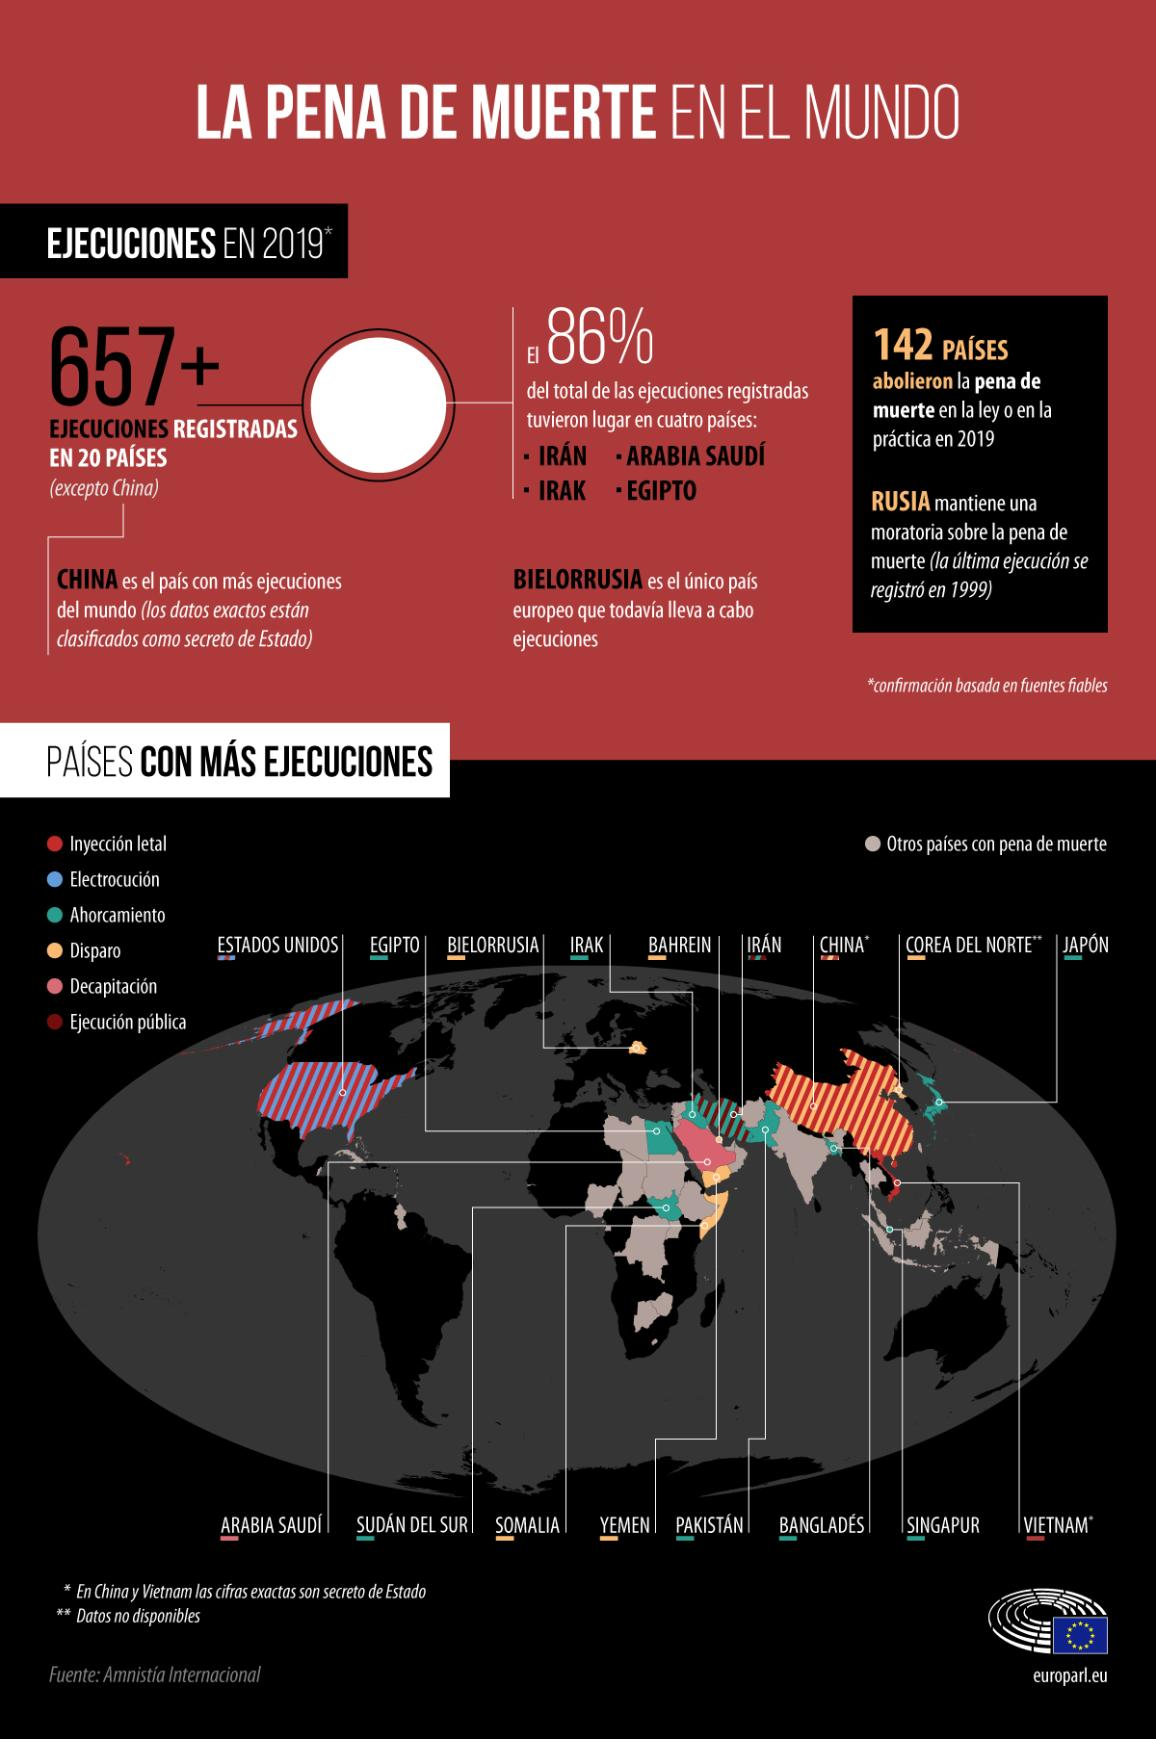 Infographic with fact and figures on death penalty in the world in 2019 and map countries with the most executions